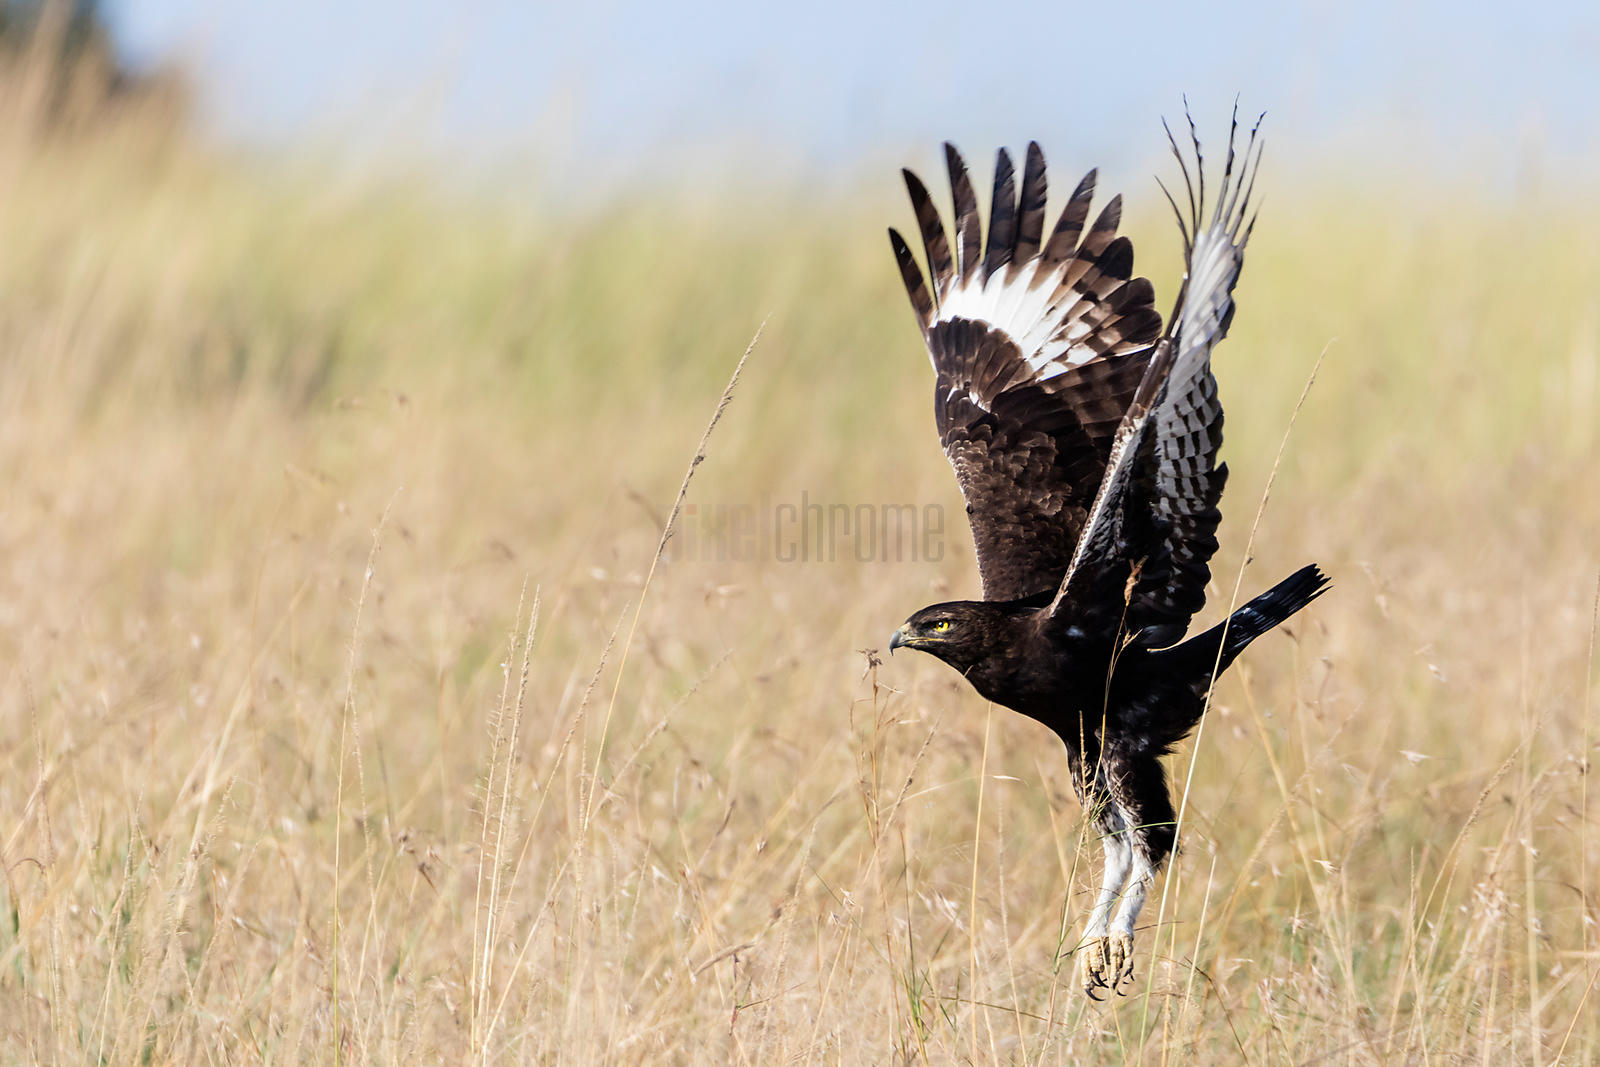 Long Crested Eagle Takes off from the Tall Grass